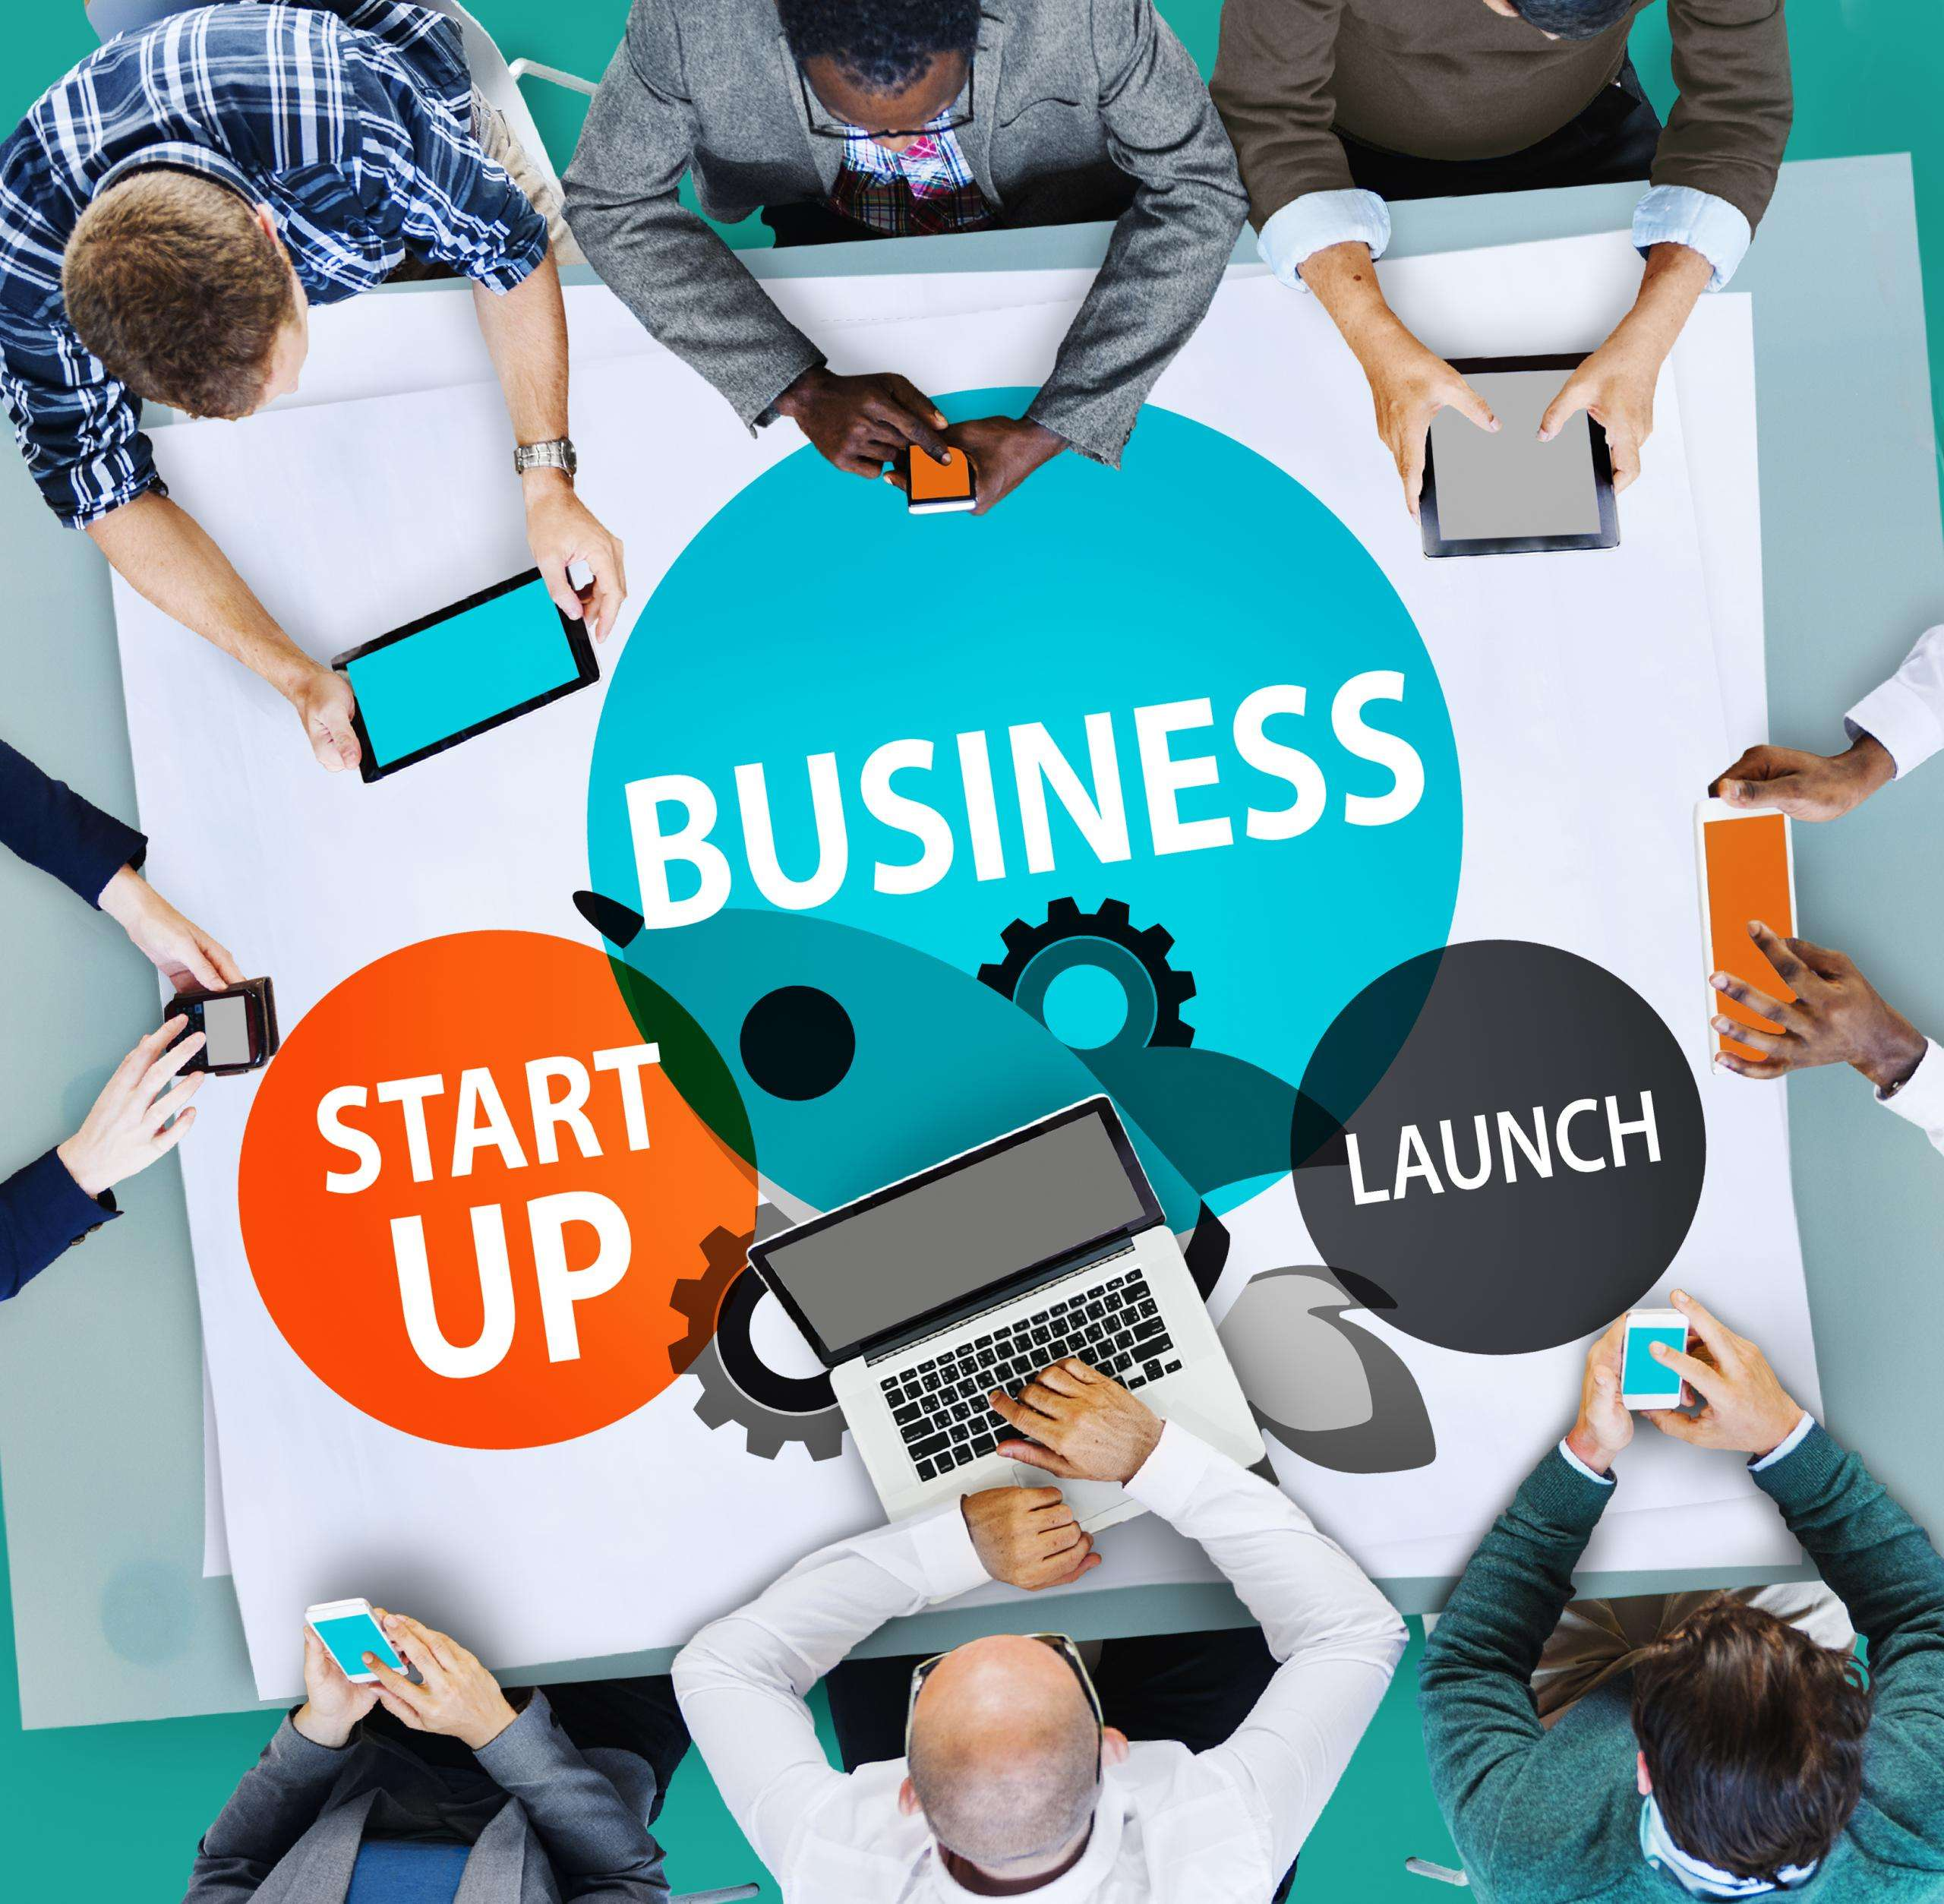 I want to start a business but have no ideas- solved